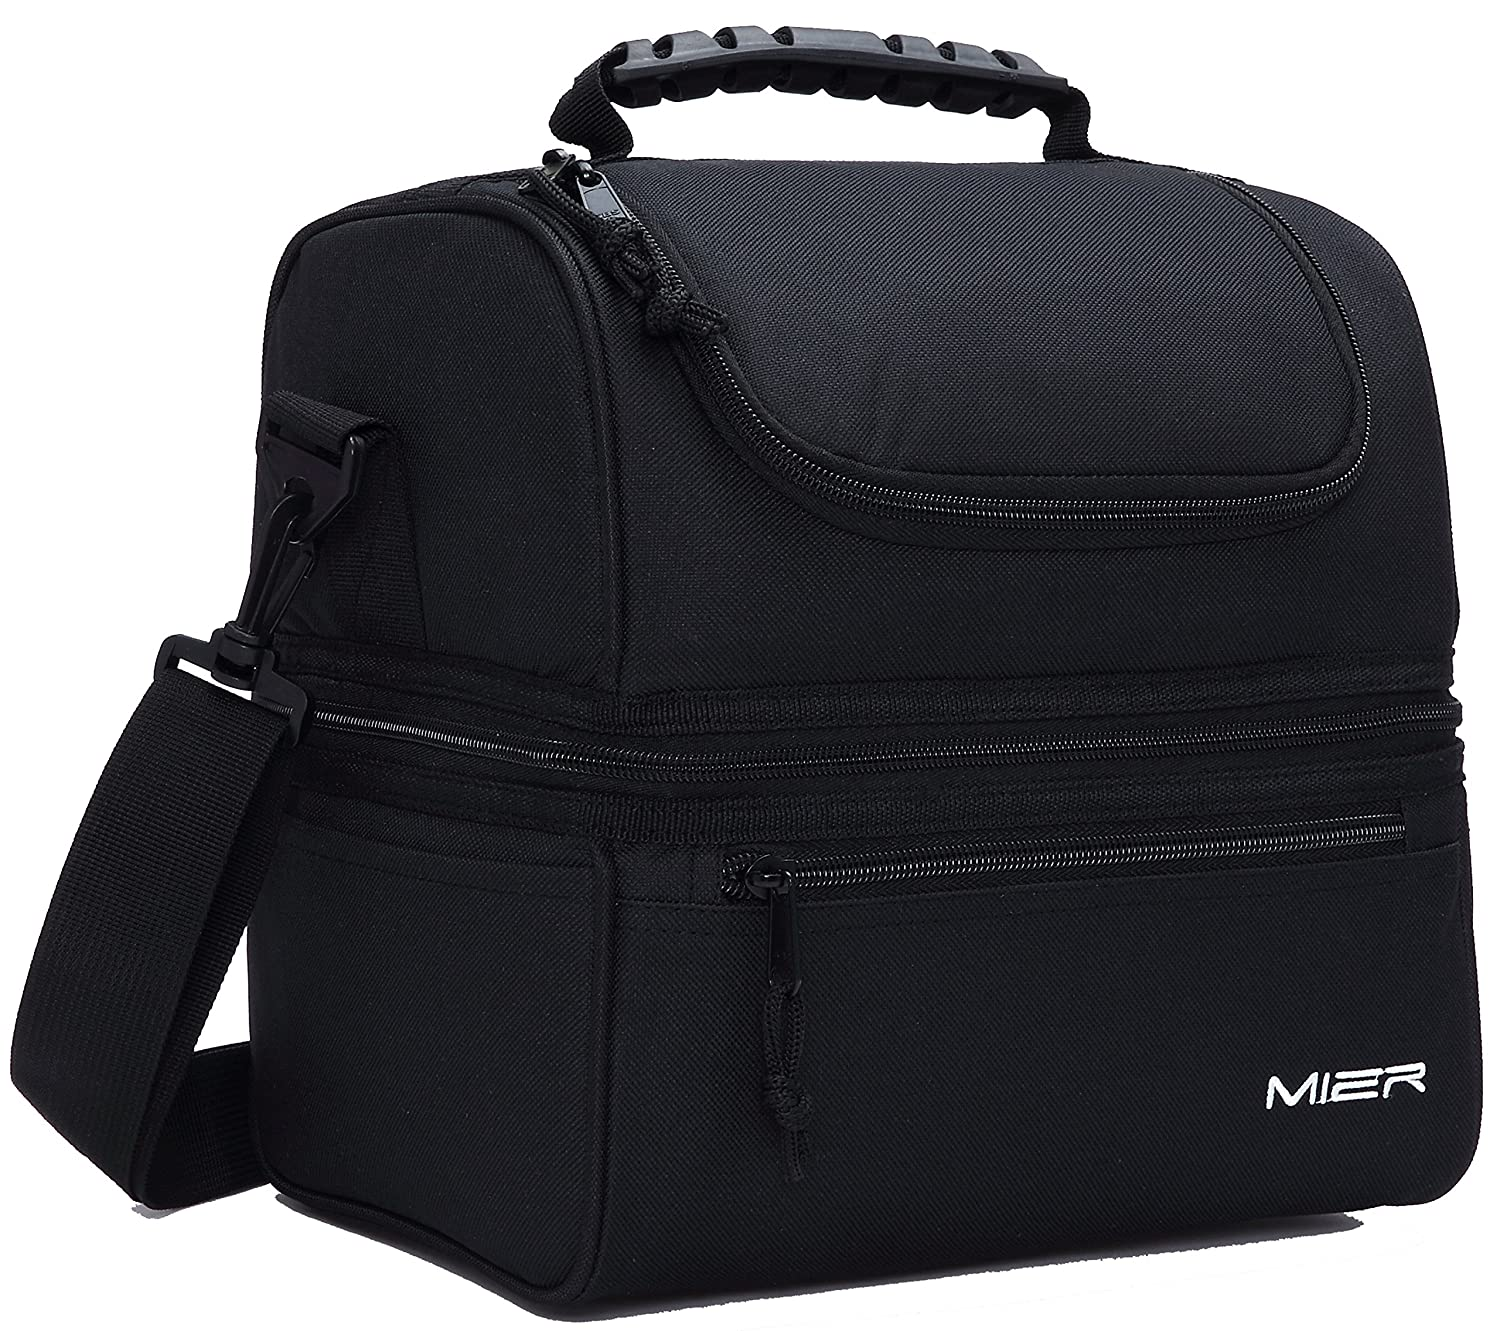 f29b3e177b52 MIER Adult Lunch Box Insulated Lunch Bag Large Cooler Tote Bag for Men,  Women, Double Deck Cooler(Black)